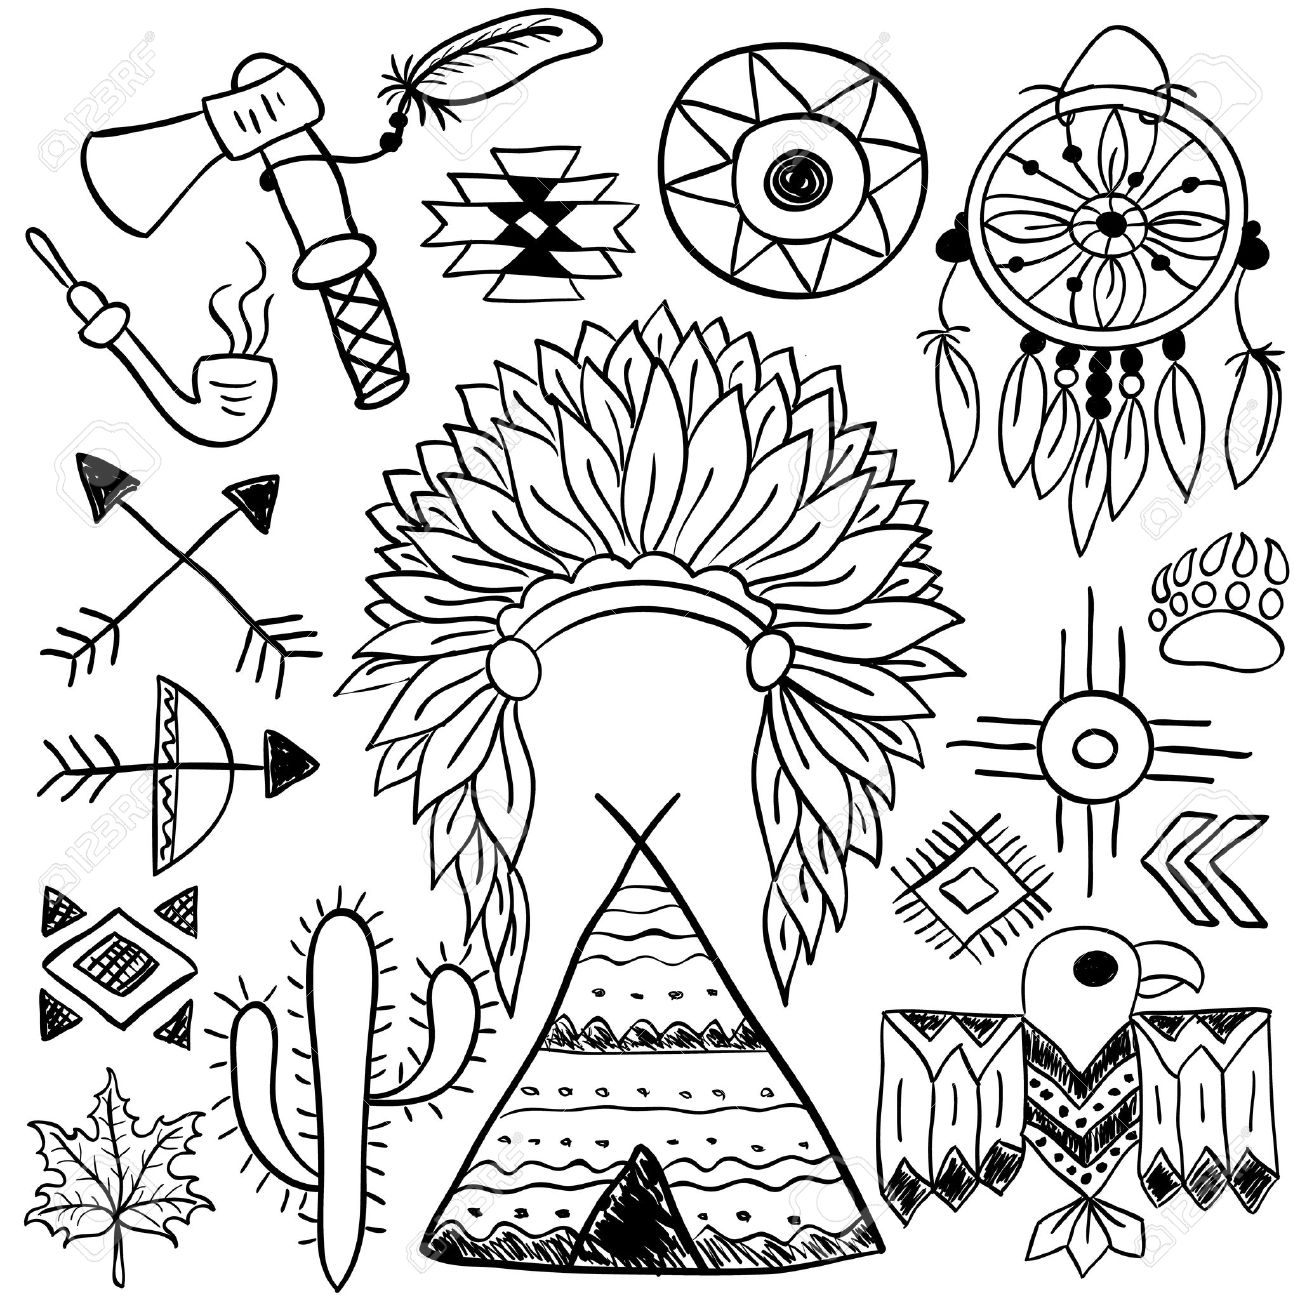 1300x1300 Hand Drawn Doodle Vector Elements Set (vol. 5 Of 9). Native